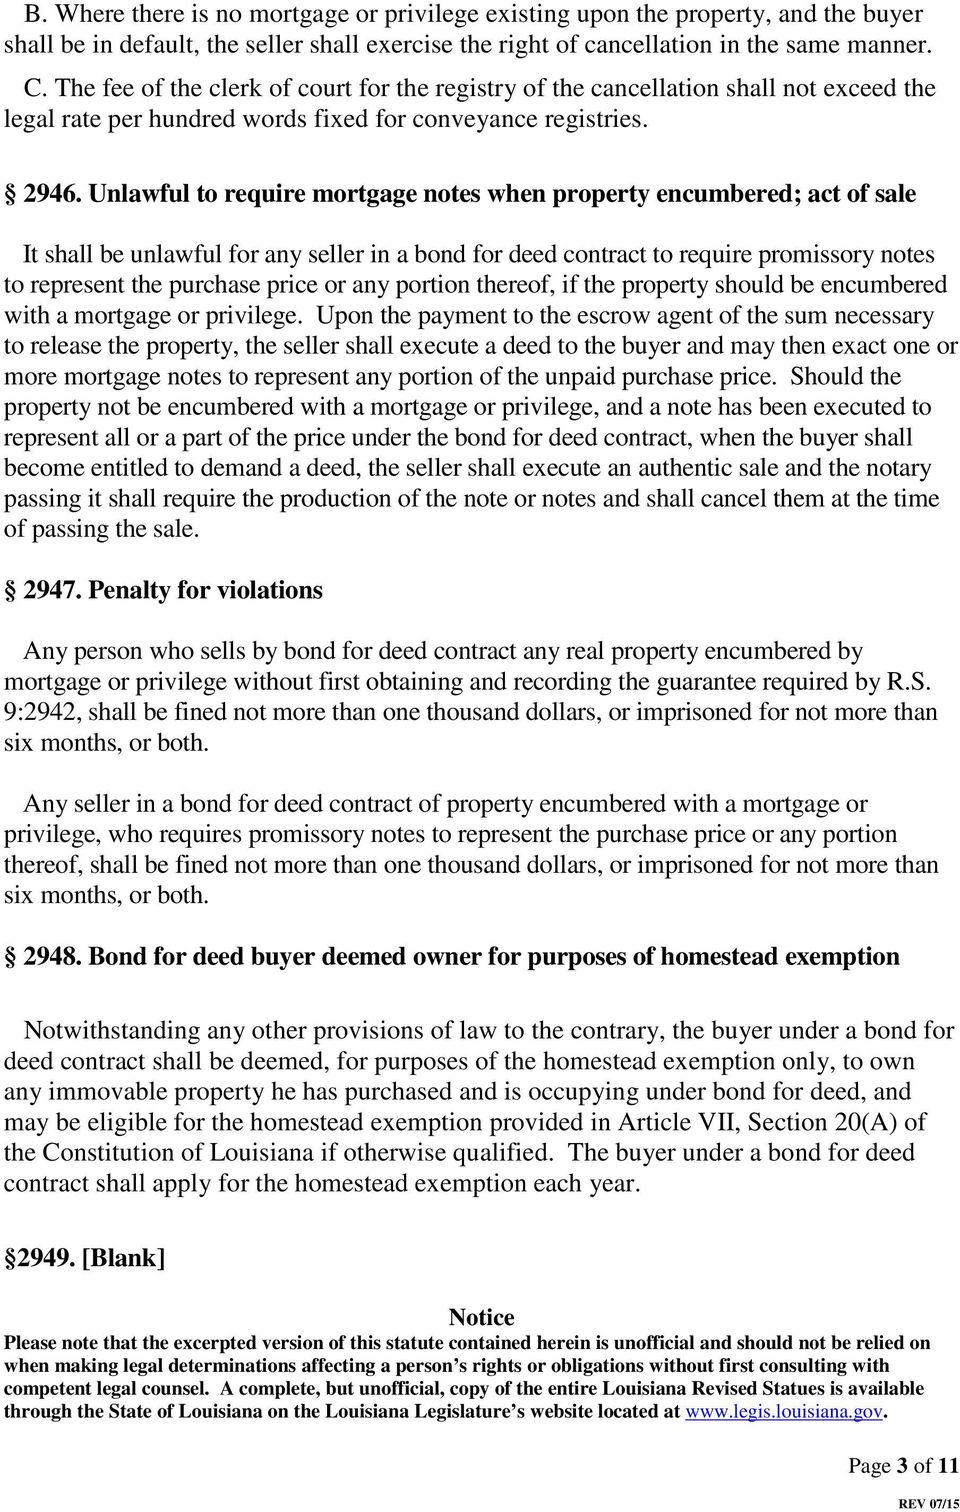 Unlawful to require mortgage notes when property encumbered; act of sale It shall be unlawful for any seller in a bond for deed contract to require promissory notes to represent the purchase price or